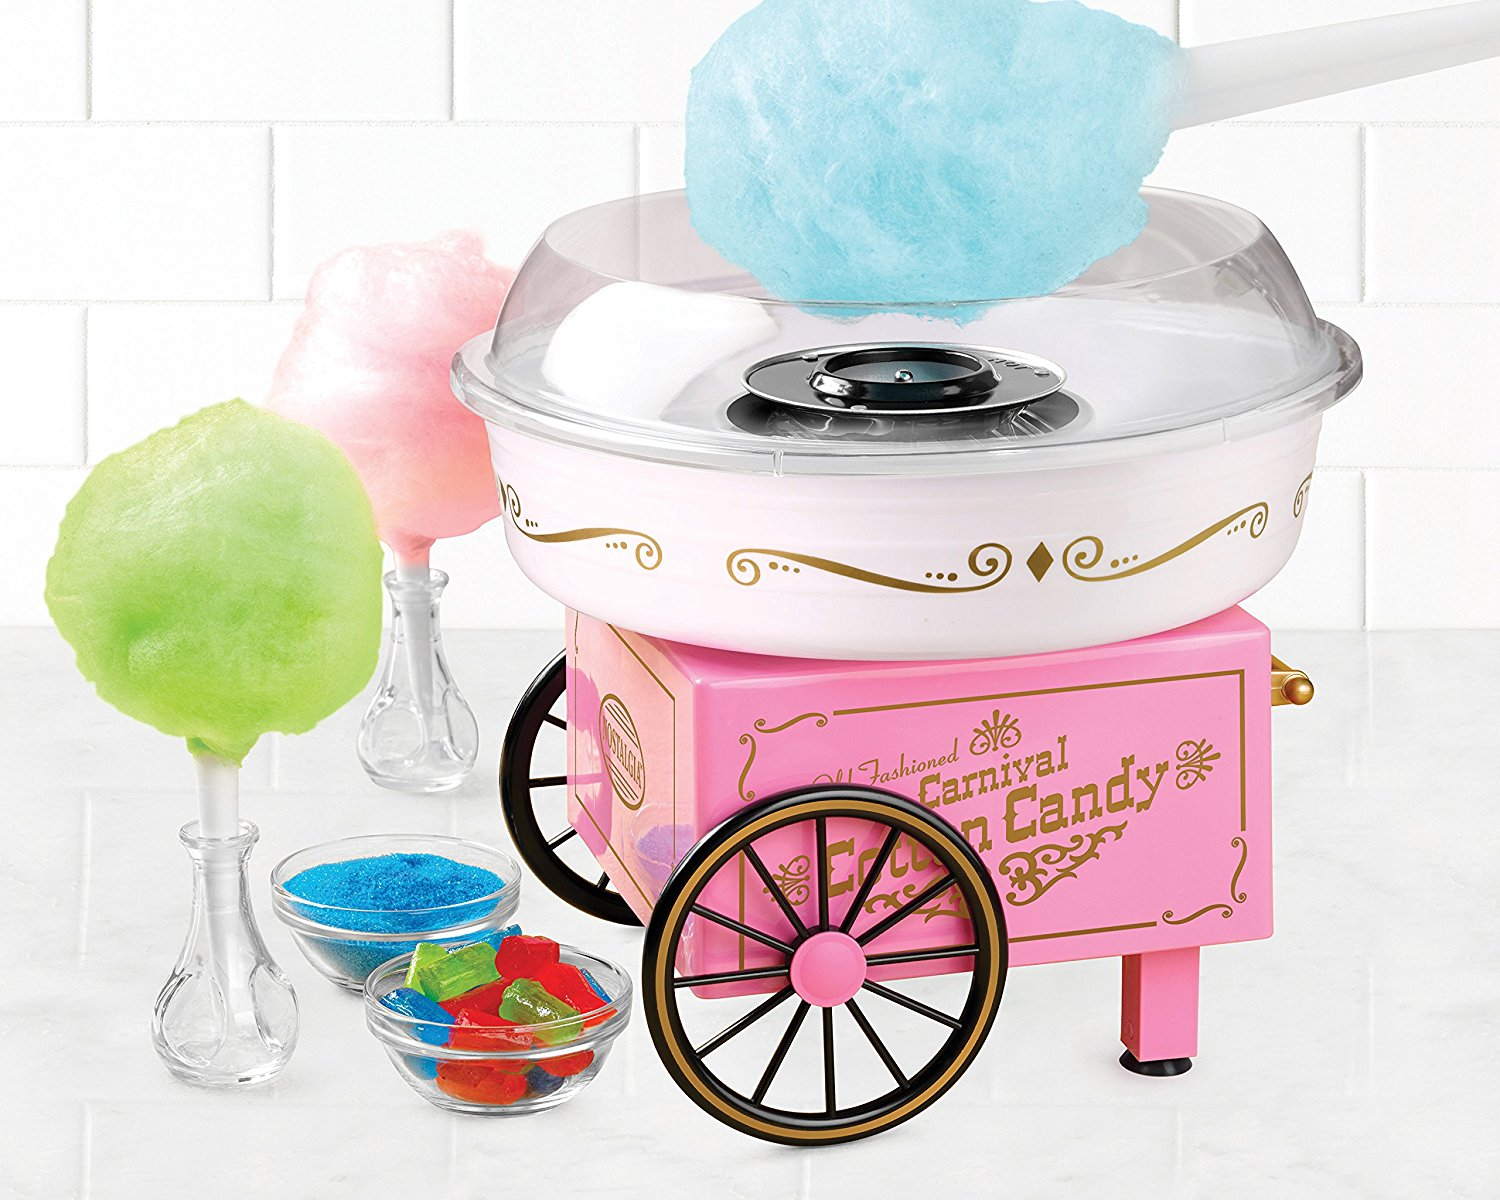 Mini Cotton Candy Machine Brings the Carnival to You